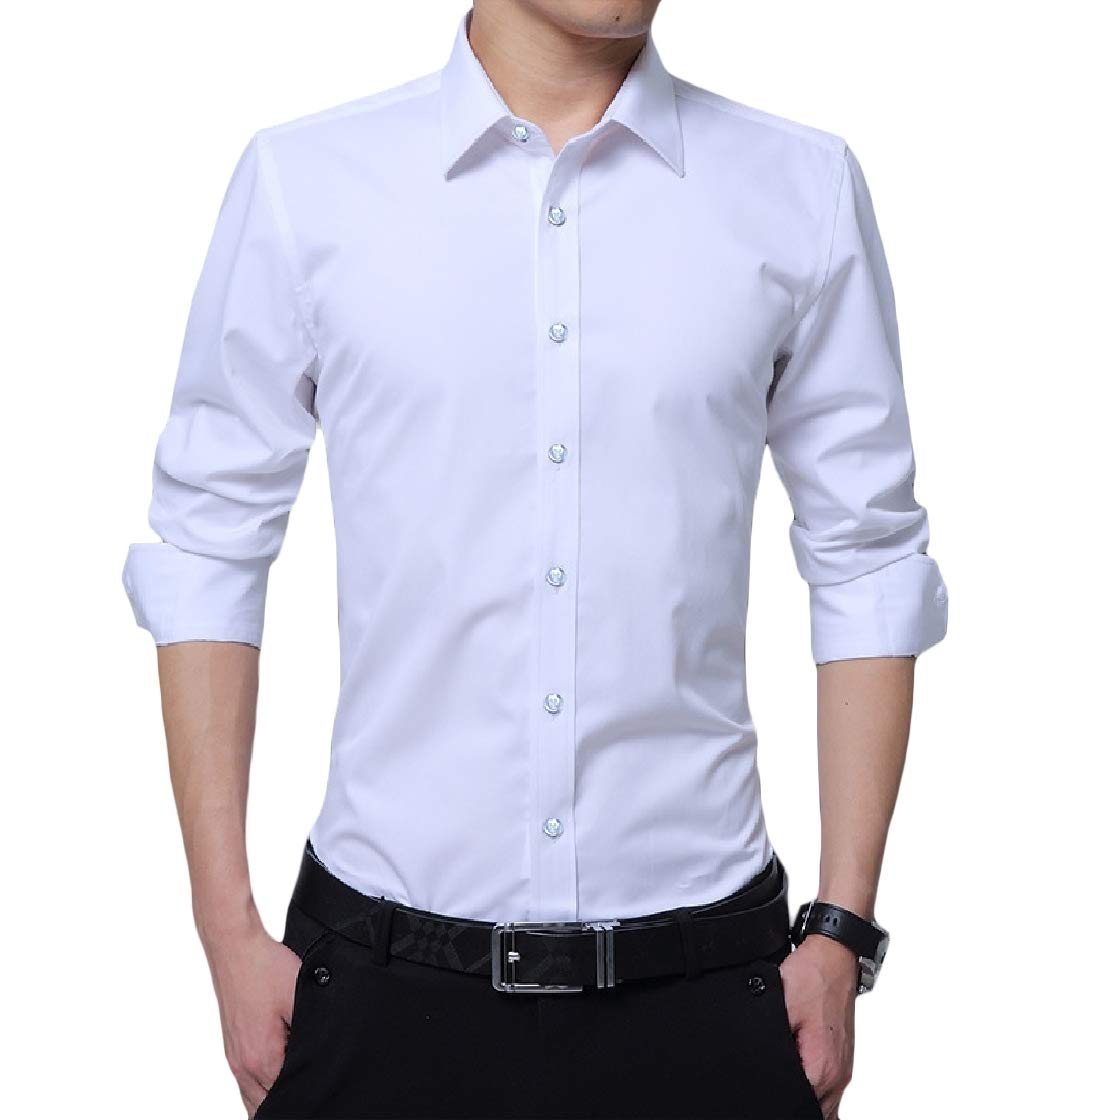 YUNY Mens Solid Business Plus Size Curvy Long Sleeve Lapel Button Top Shirt White 5XL